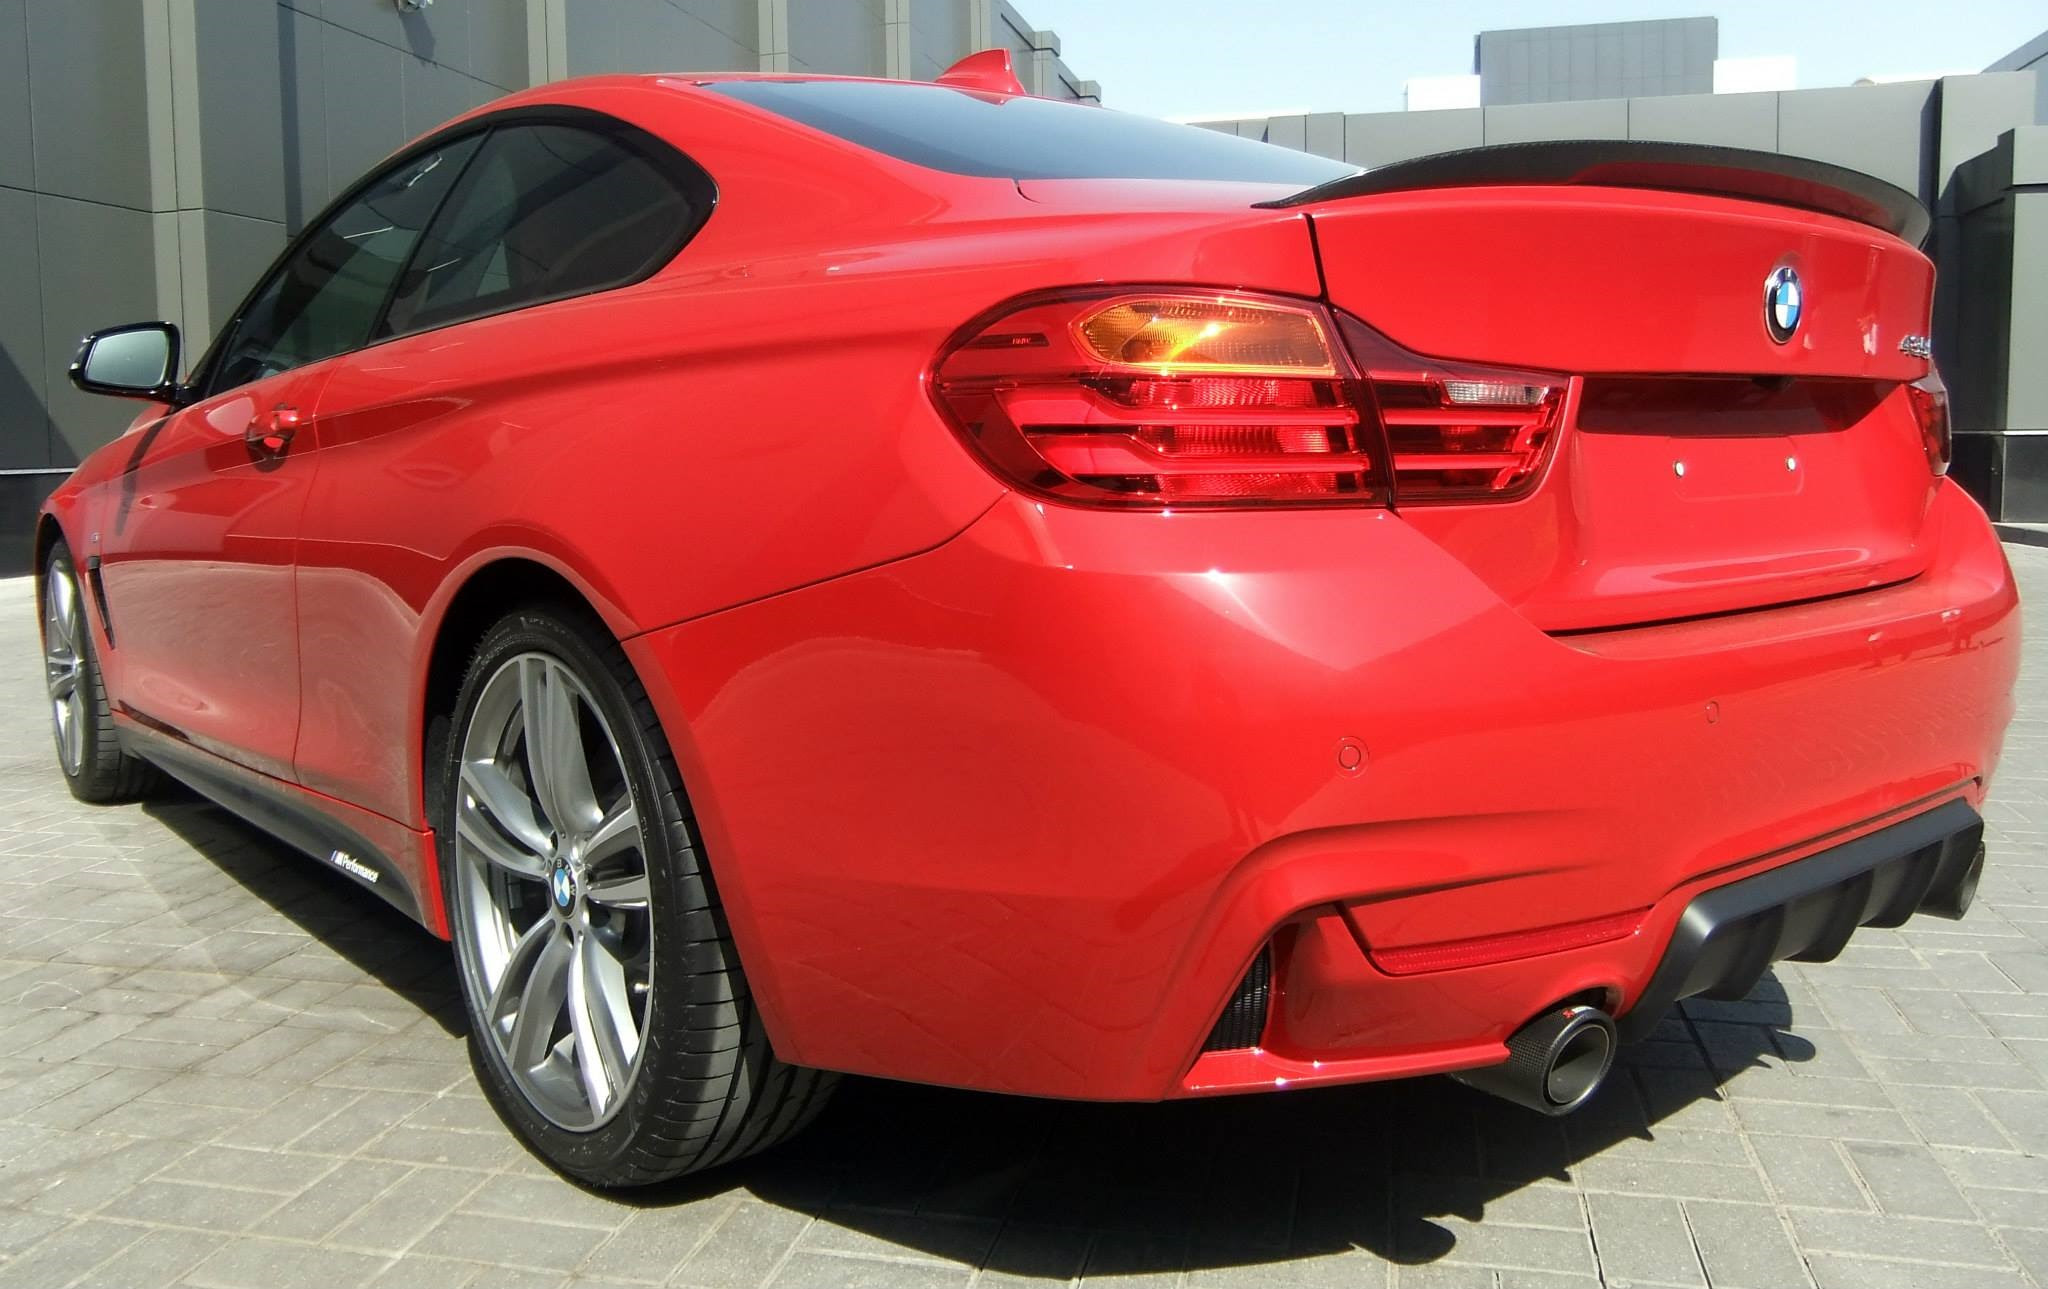 BMW 435i M Performance Parts in Melbourne Red